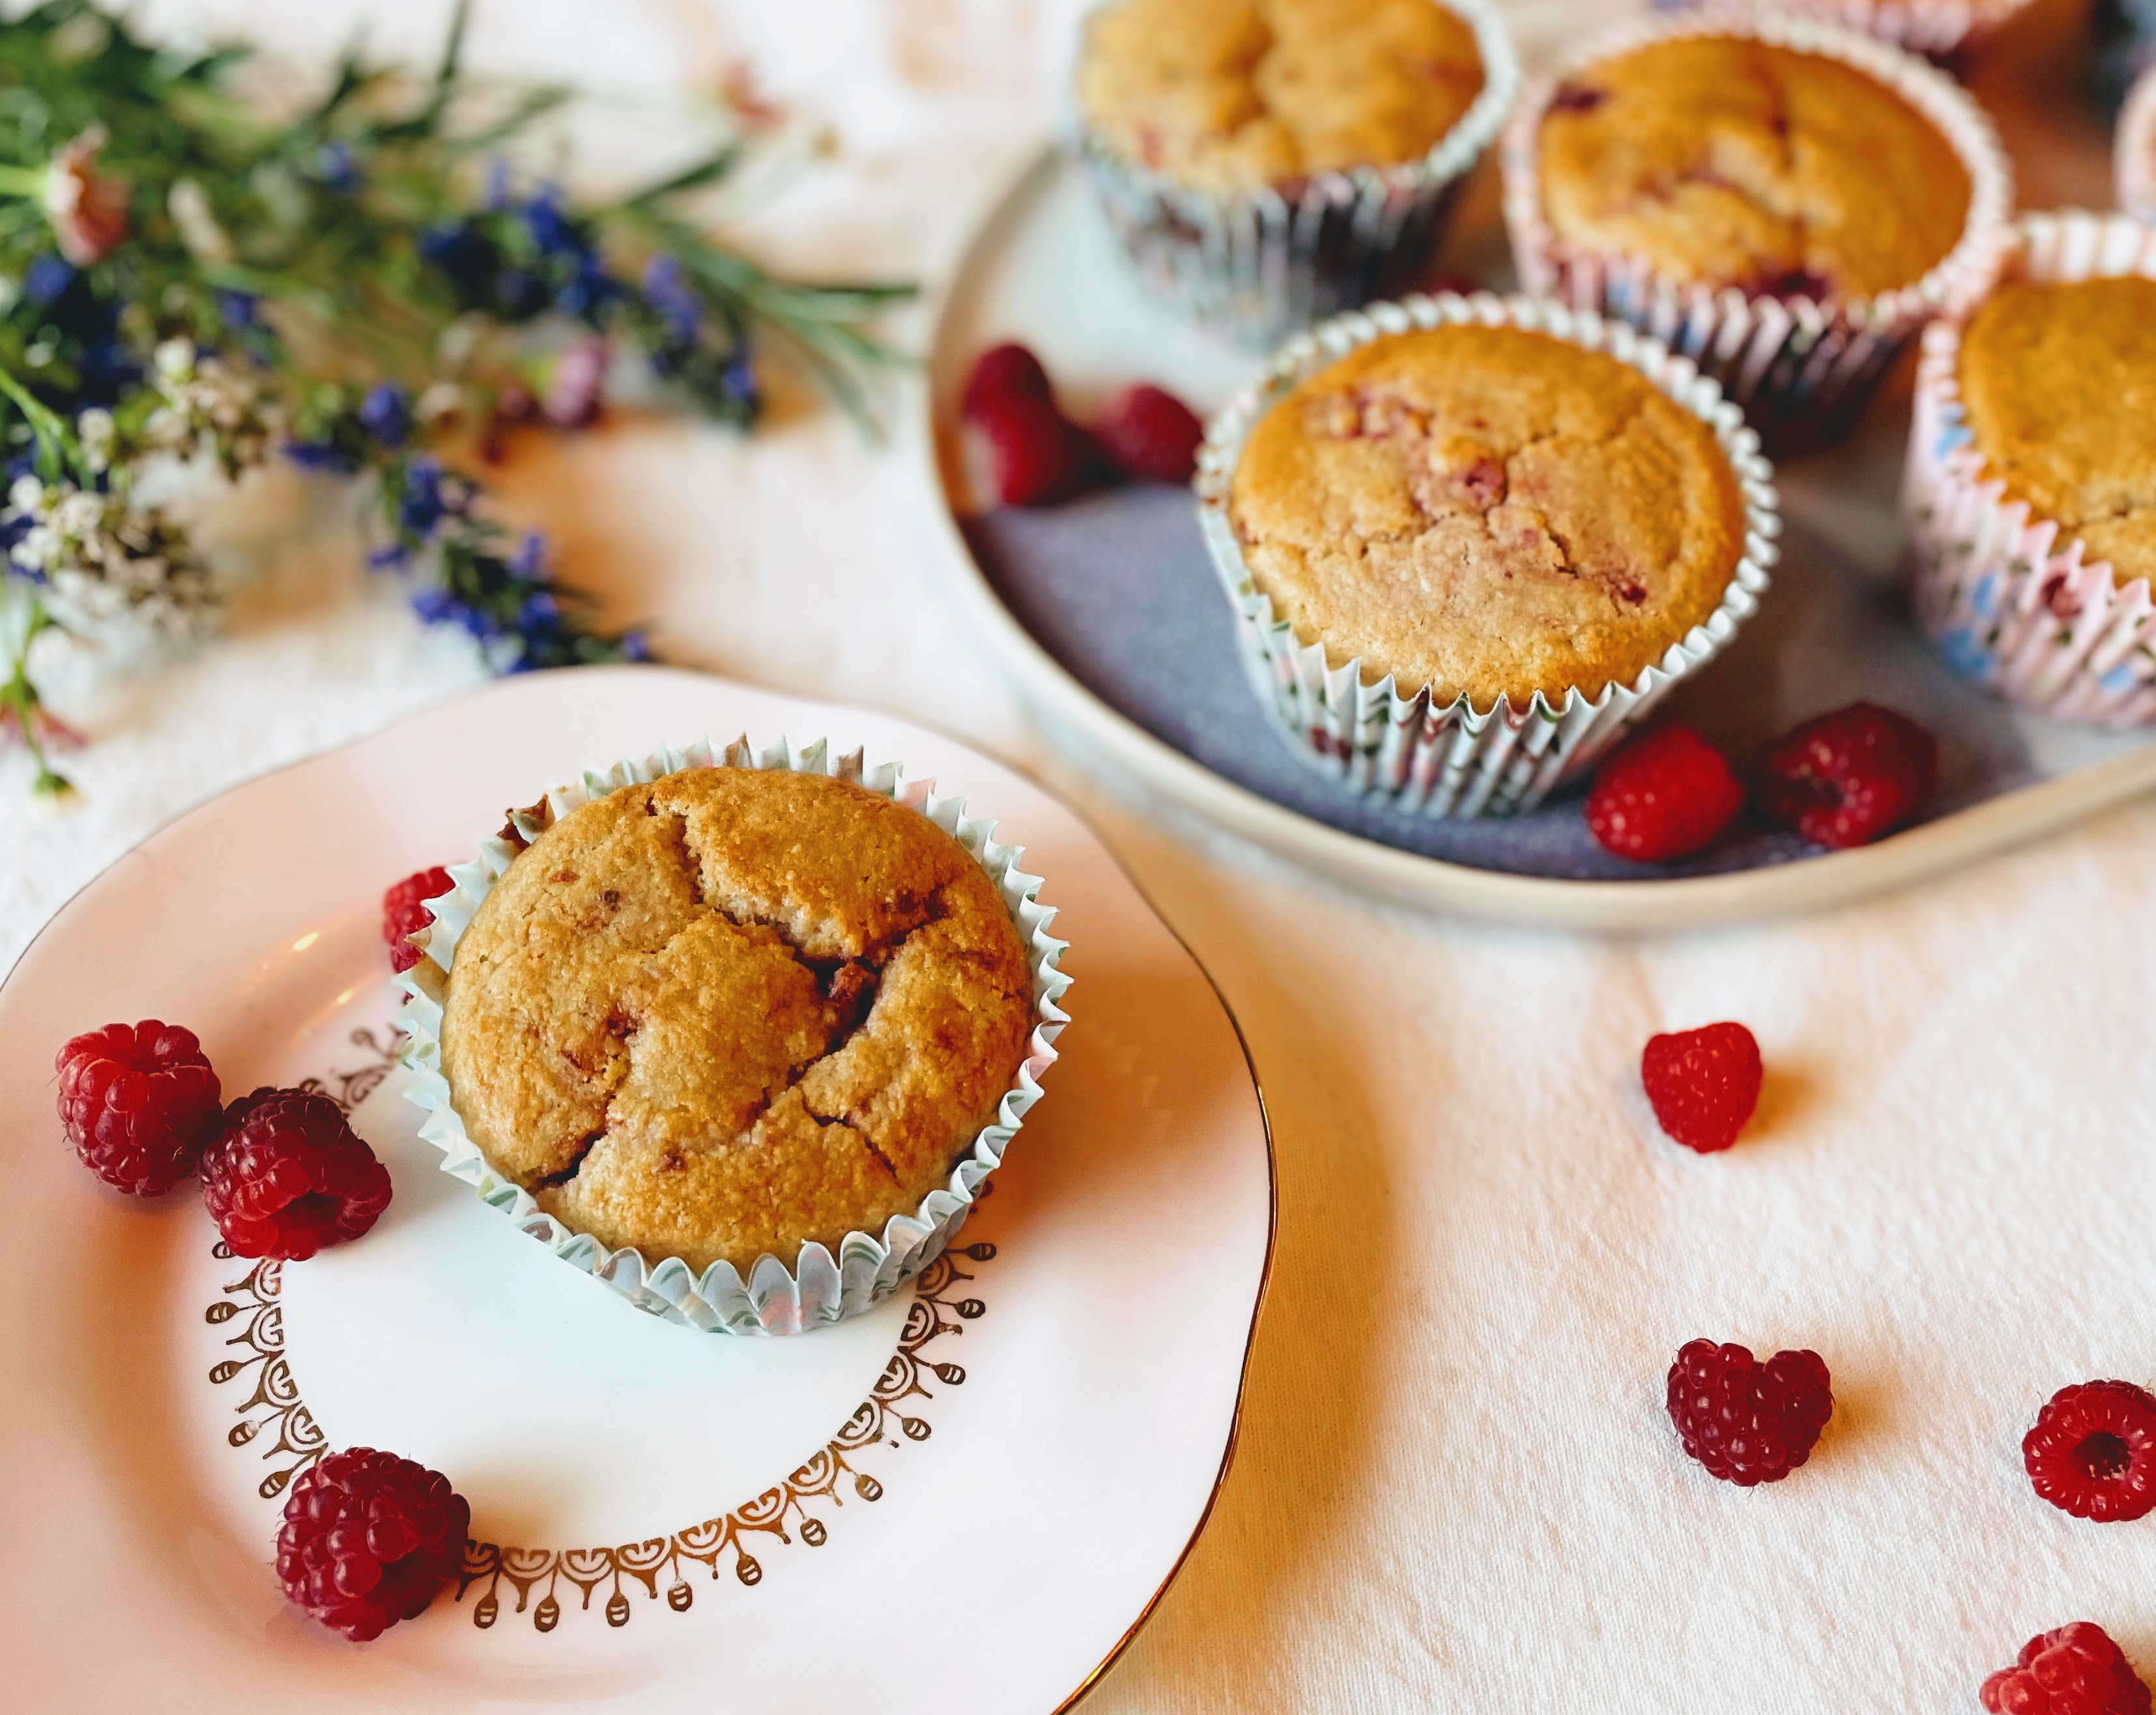 A lemon and raspberry muffin on a light pinks plate, with a few fresh raspberries scattered next to it. The muffins is slightly cracked and golden brown on top, and in a blue floral paper case. In the background is a plate with the res of the muffins, some more fresh raspberries and some wild flowers in pink, white and bright blue.